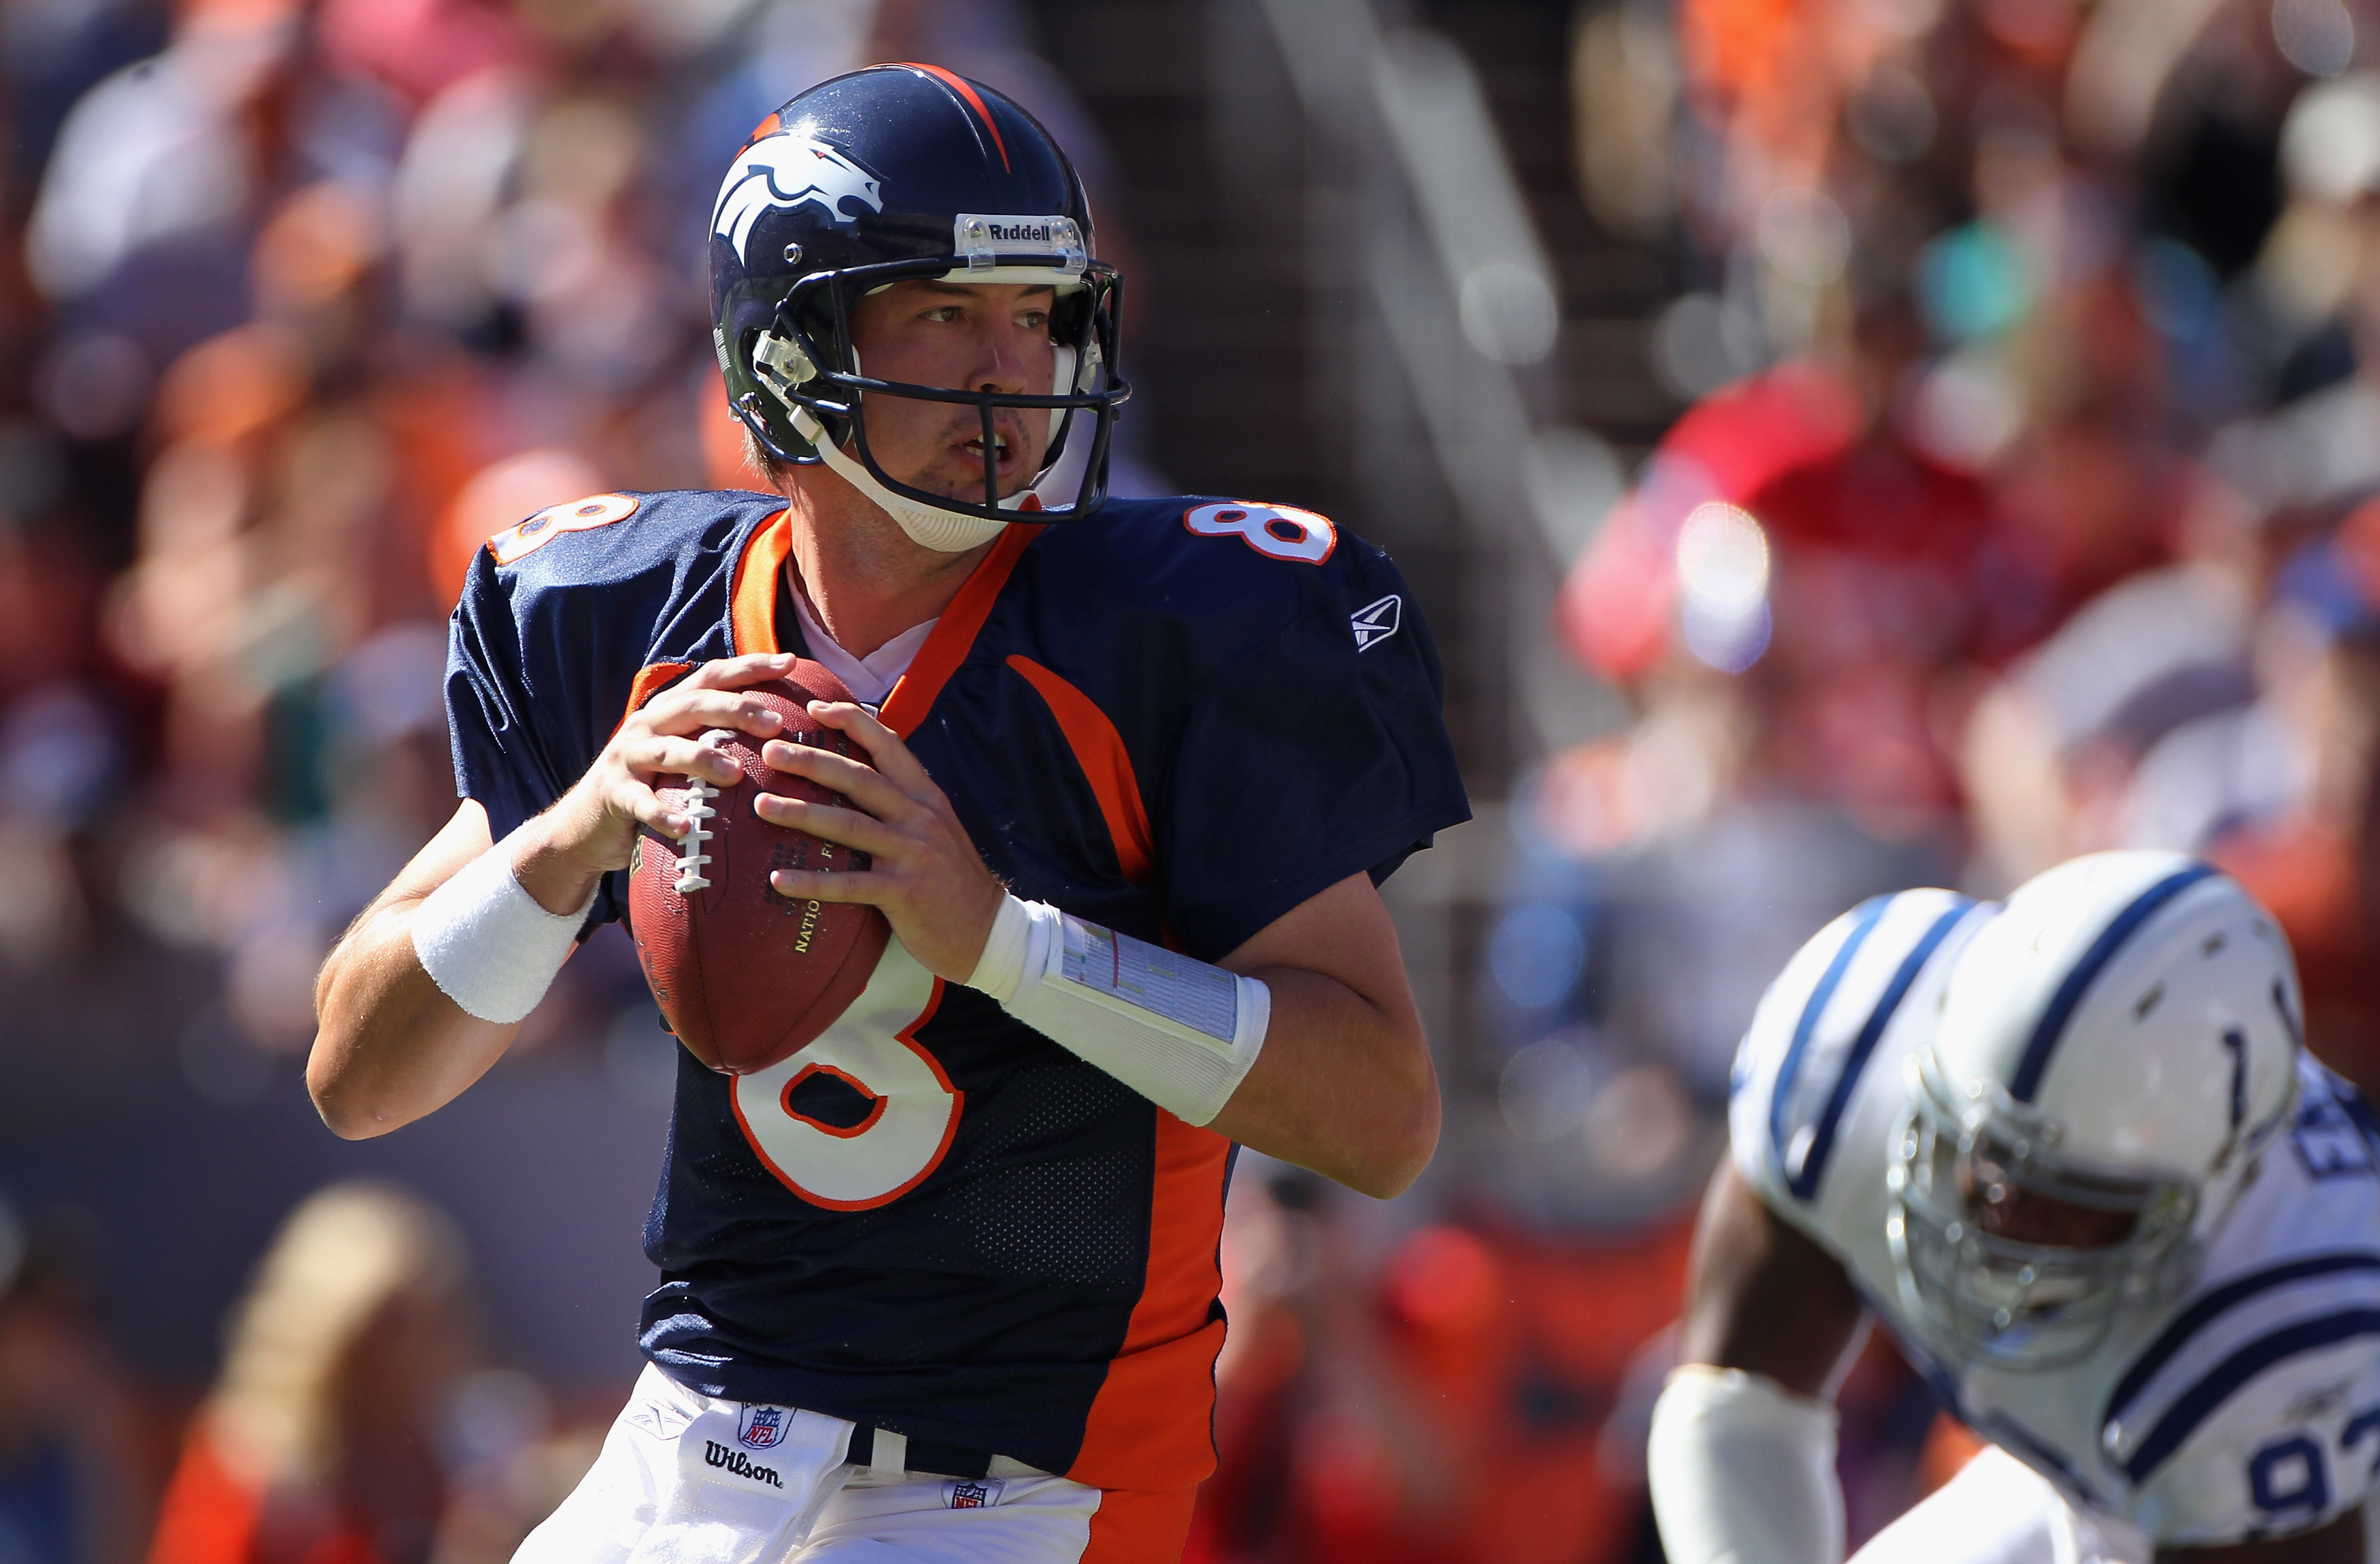 DENVER - SEPTEMBER 26:  Quarterback Kyle Orton #8 of the Denver Broncos delivers a pass against the Indianapolis Colts at INVESCO Field at Mile High on September 26, 2010 in Denver, Colorado. Orton passed for 476 yards as the Colts defeated the Broncos 27